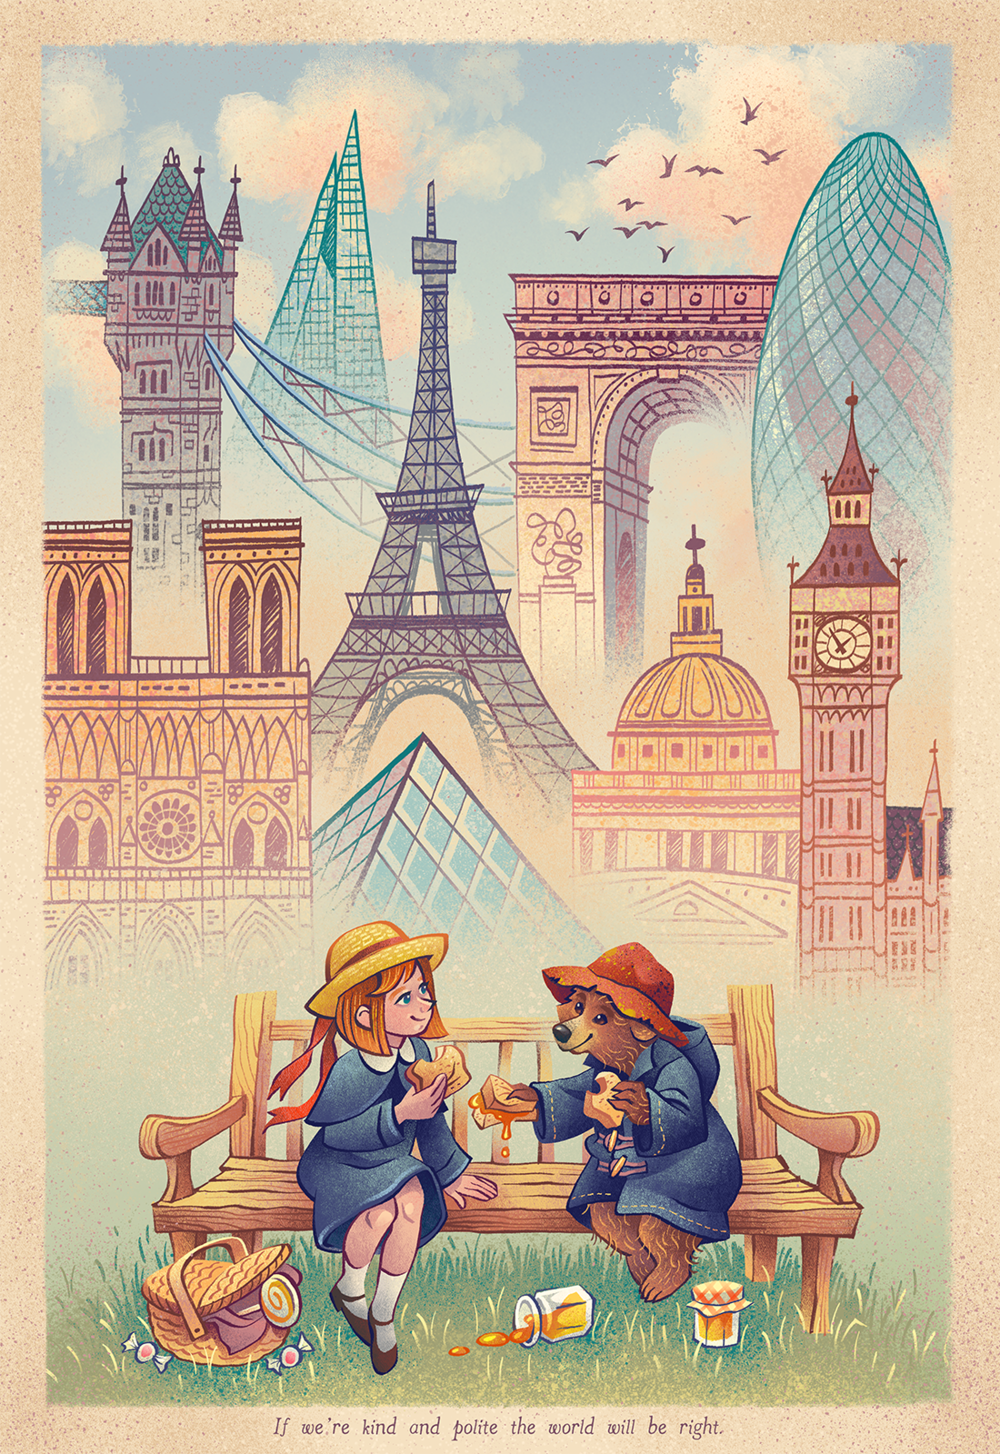 paddington and madeline valerie valdivia.png